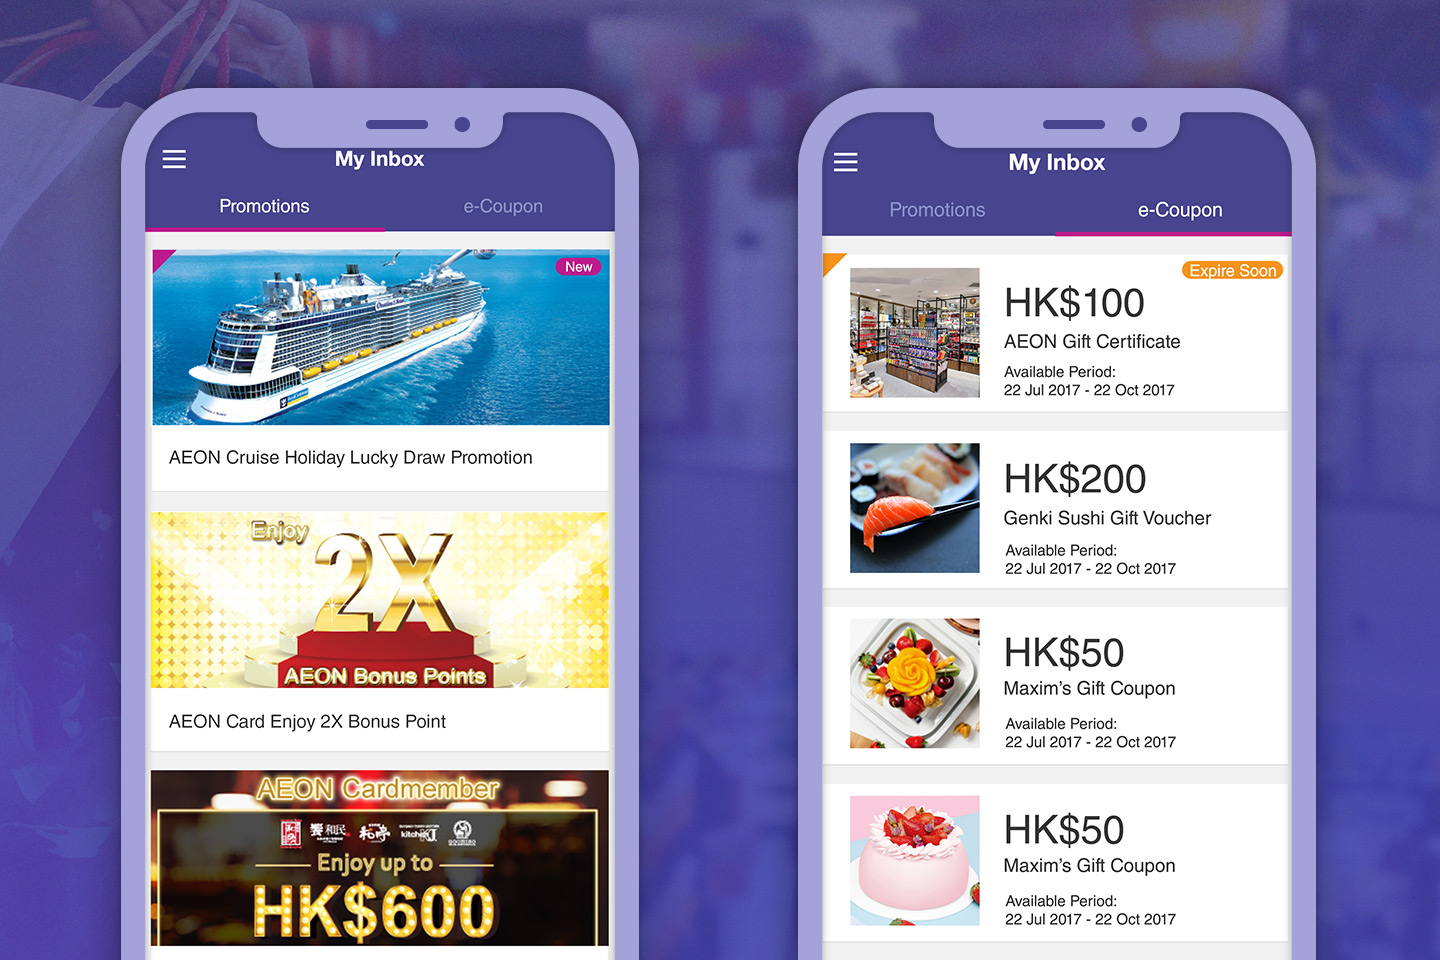 Receive latest promotion offers and e-Coupons from AEON HK App